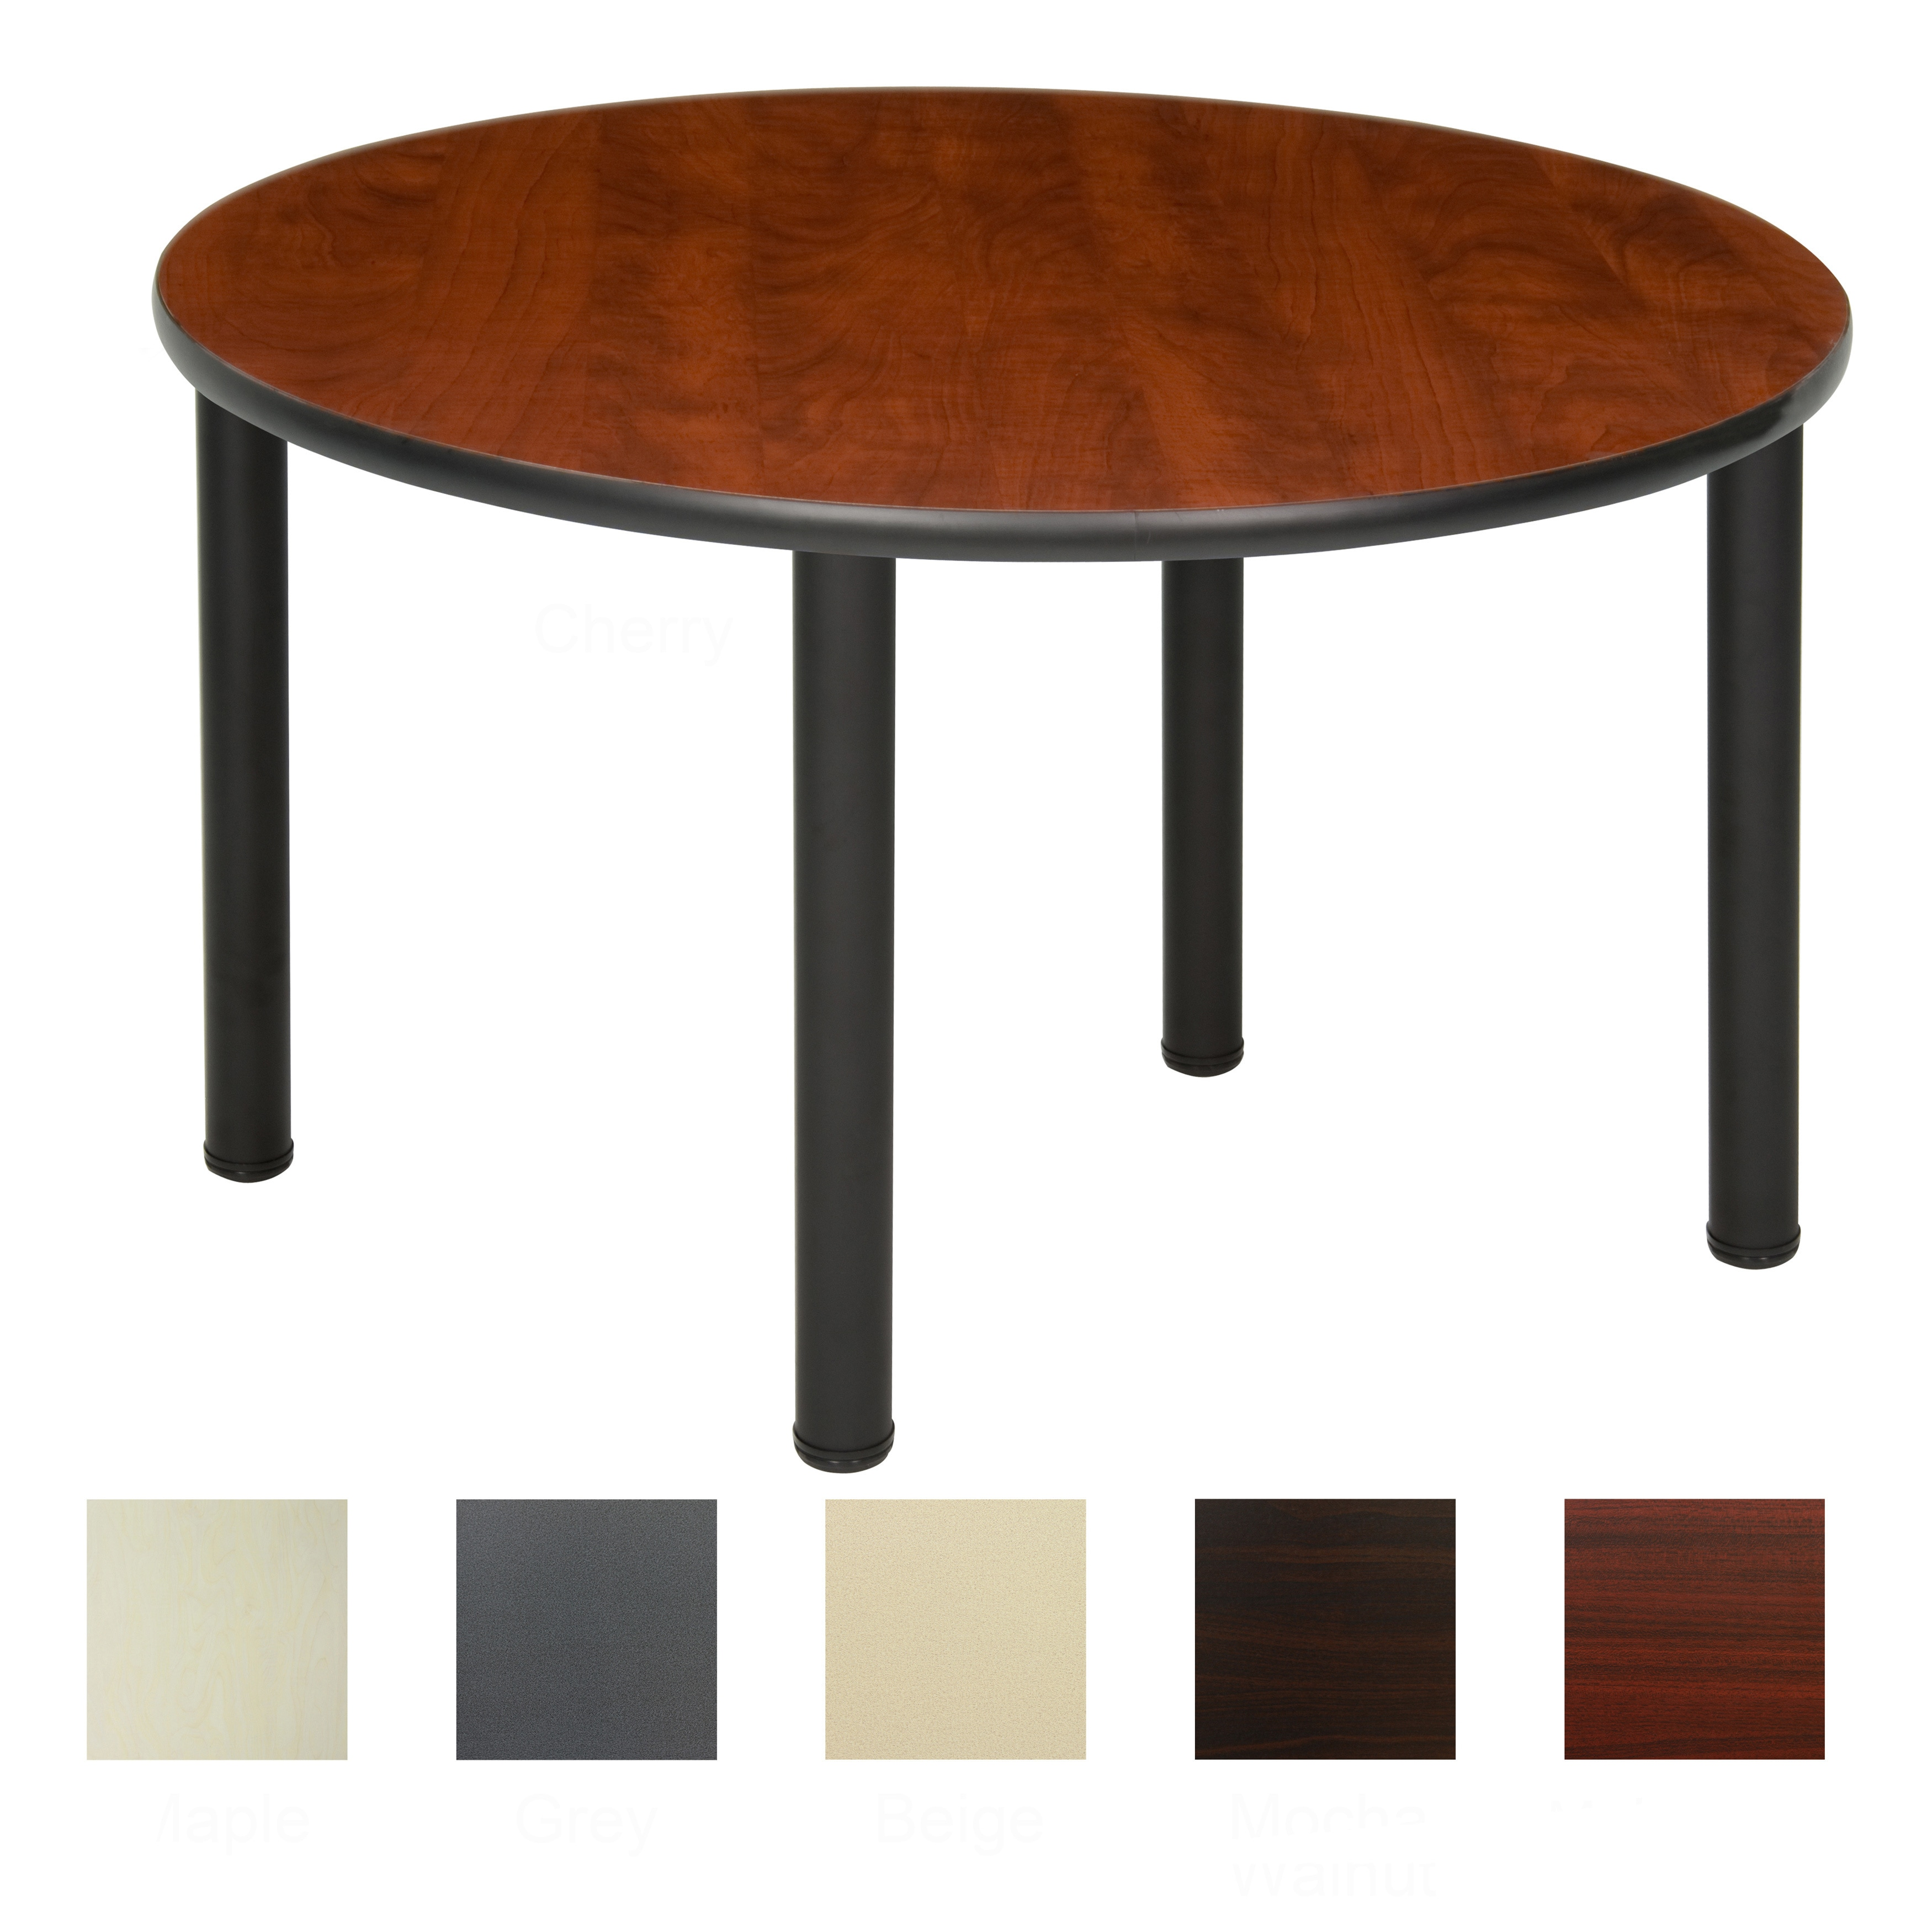 42 Inch Round Table With Black Post Legs